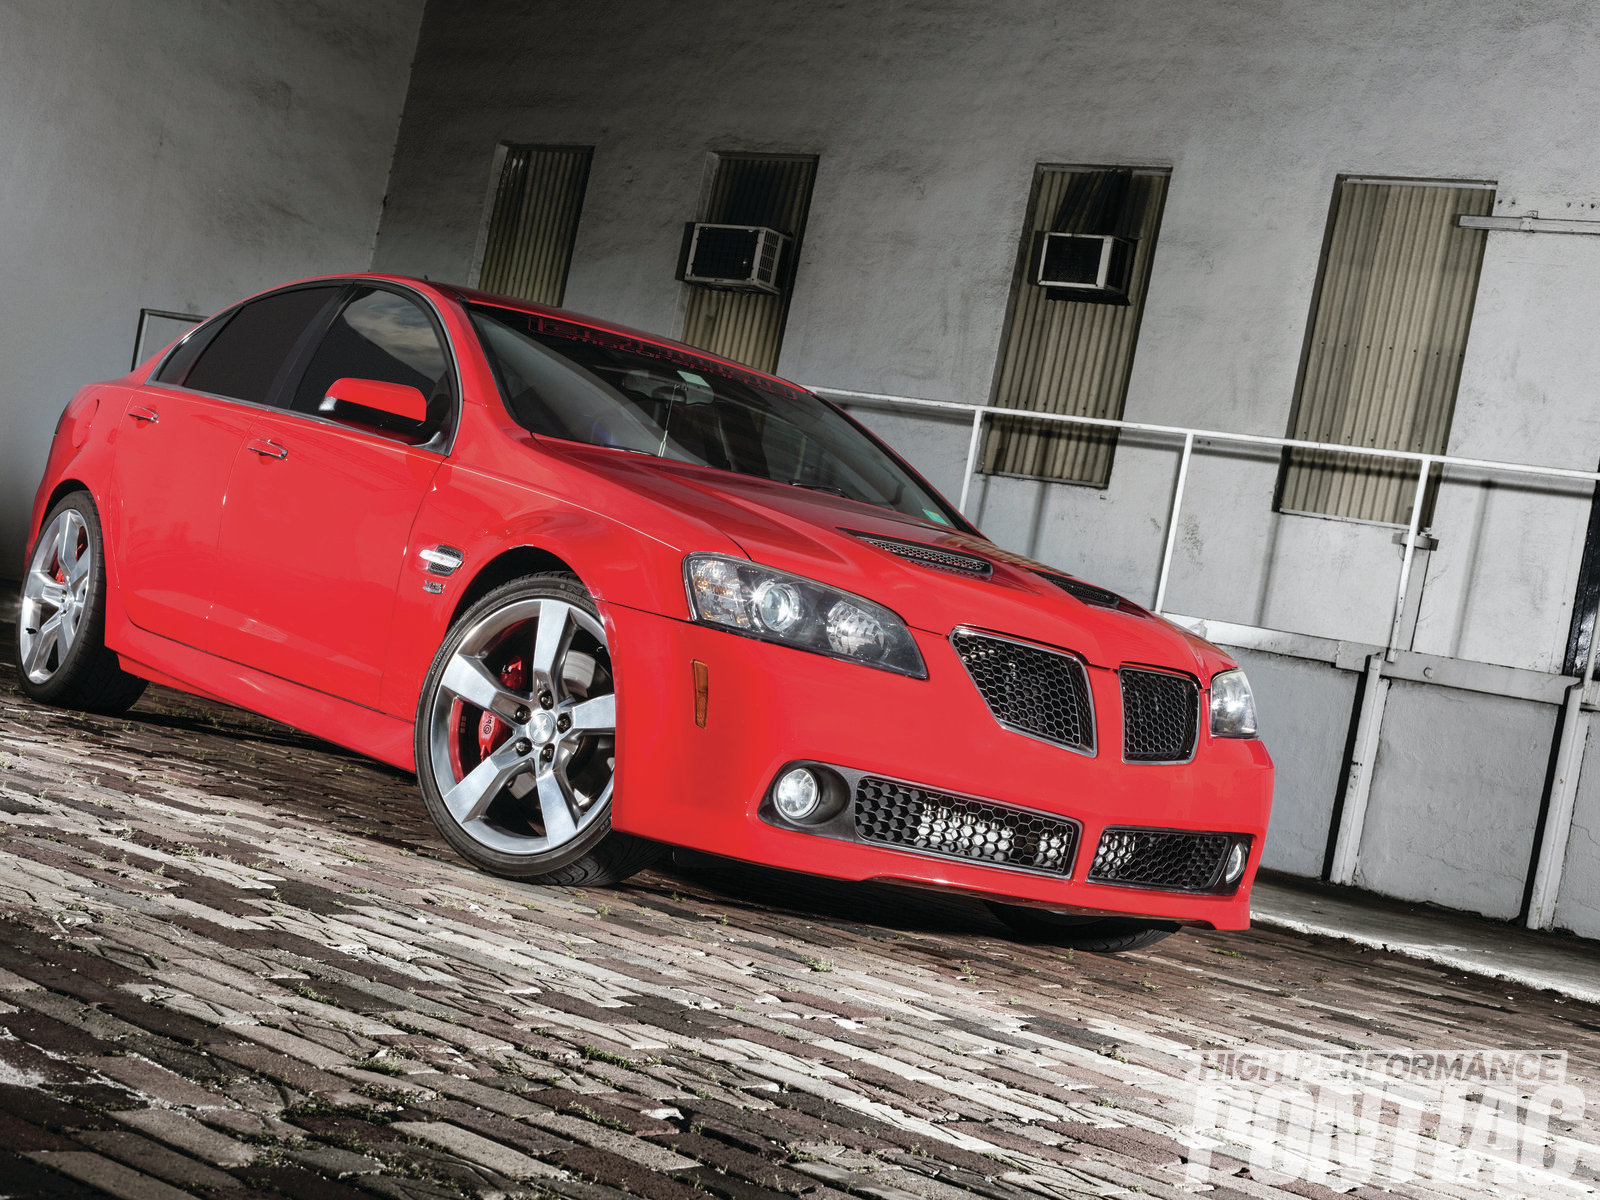 hight resolution of 2008 pontiac g8 gt three quarters front view